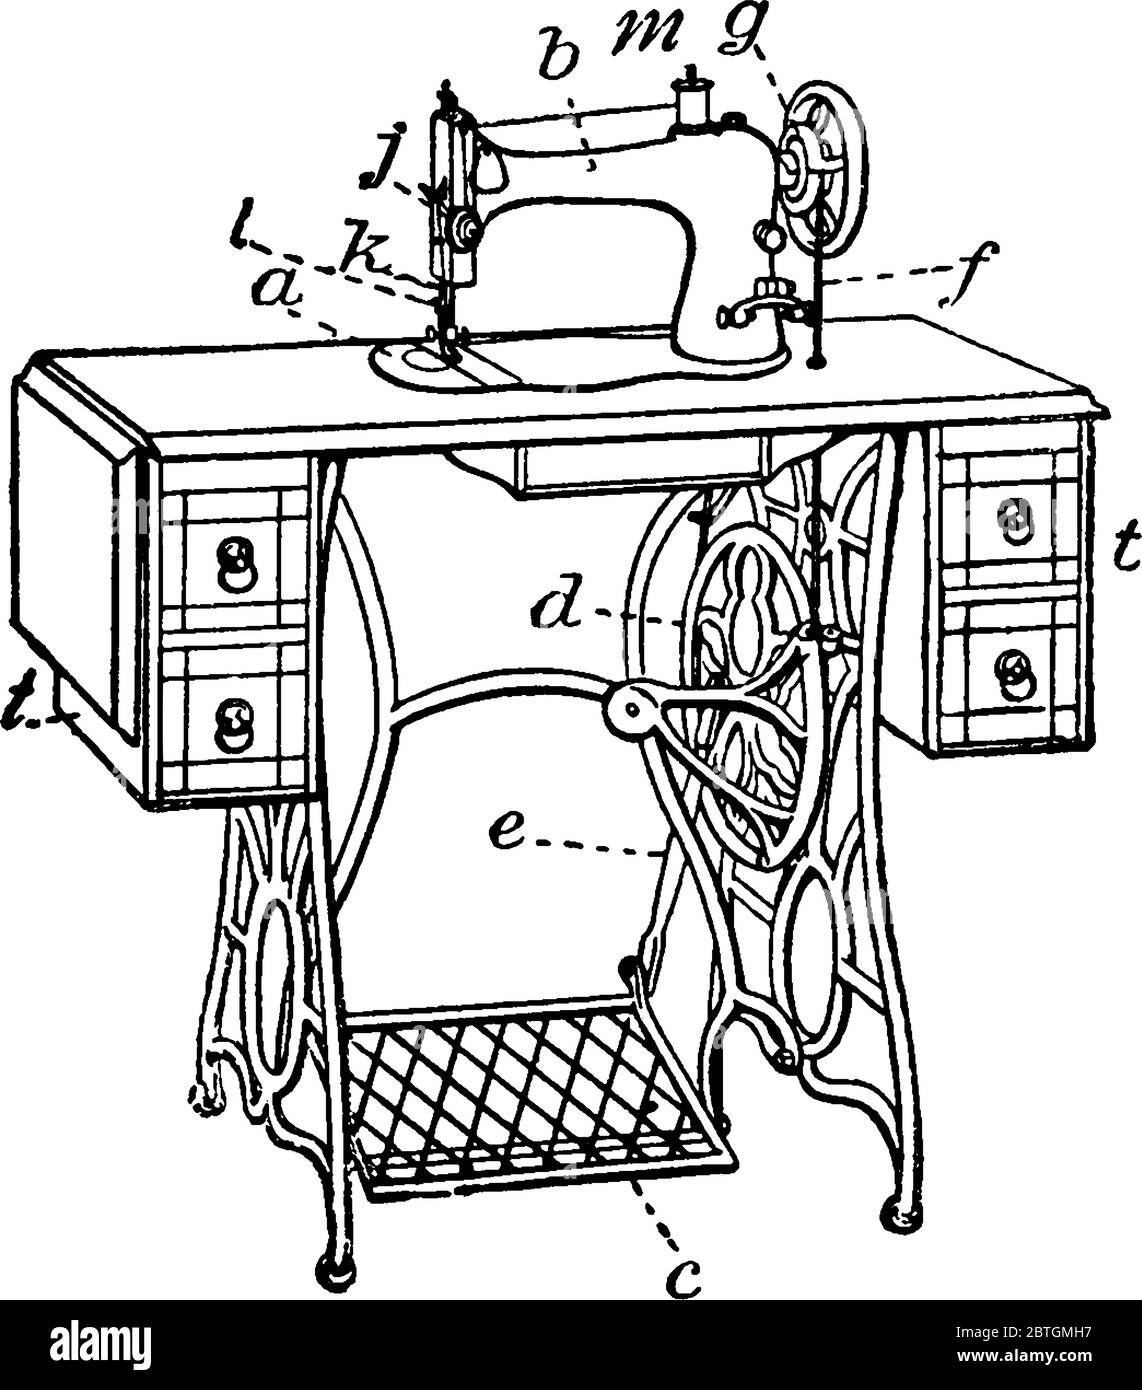 Sewing Machine Labeled : sewing, machine, labeled, Singer, Sewing, Machine, Parts,, Vintage, Drawing, Engraving, Illustration, Stock, Vector, Image, Alamy